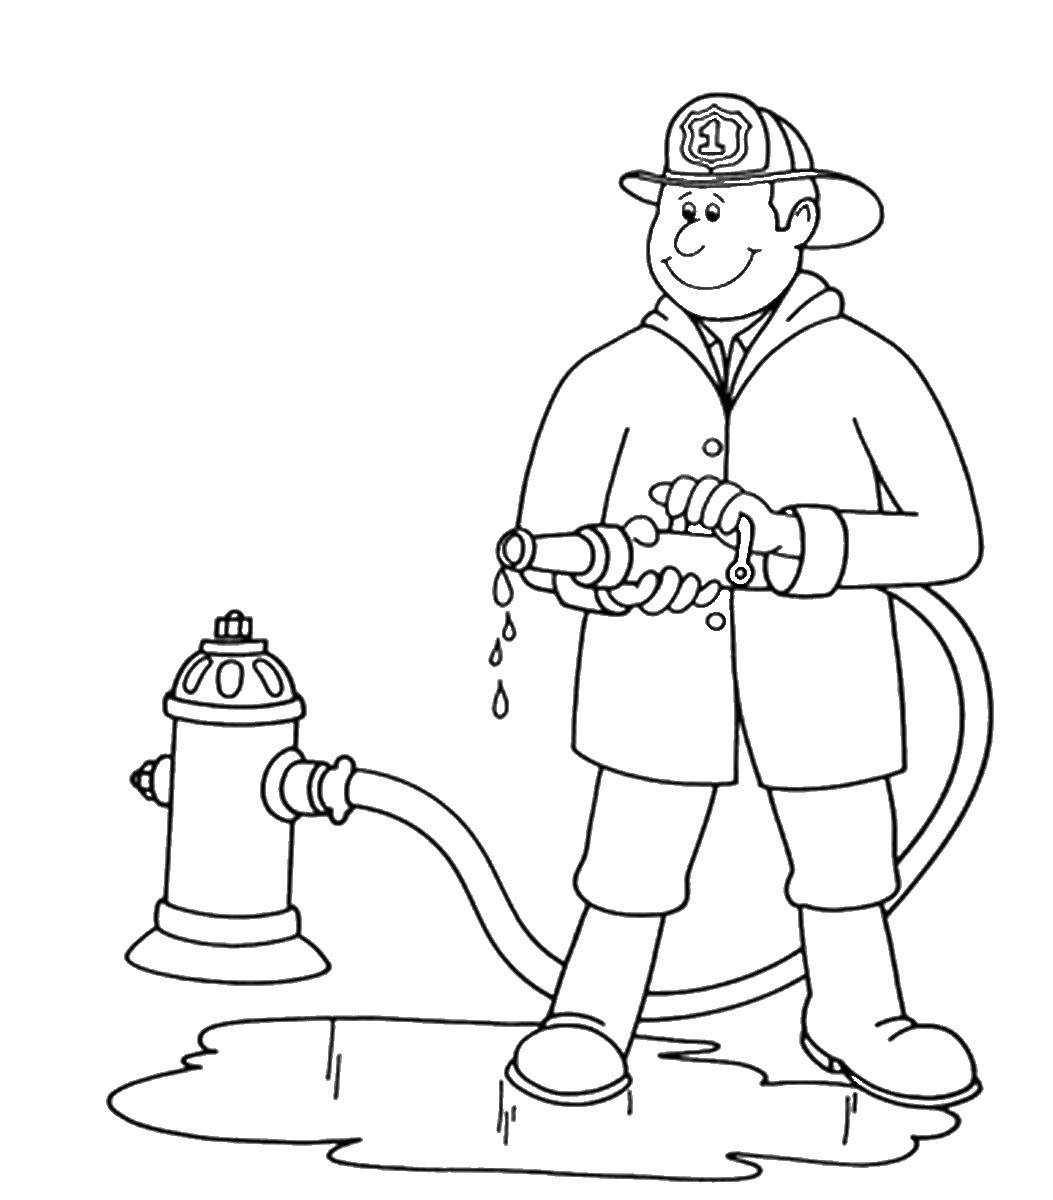 Fireman clipart outline. Free firefighter cliparts black